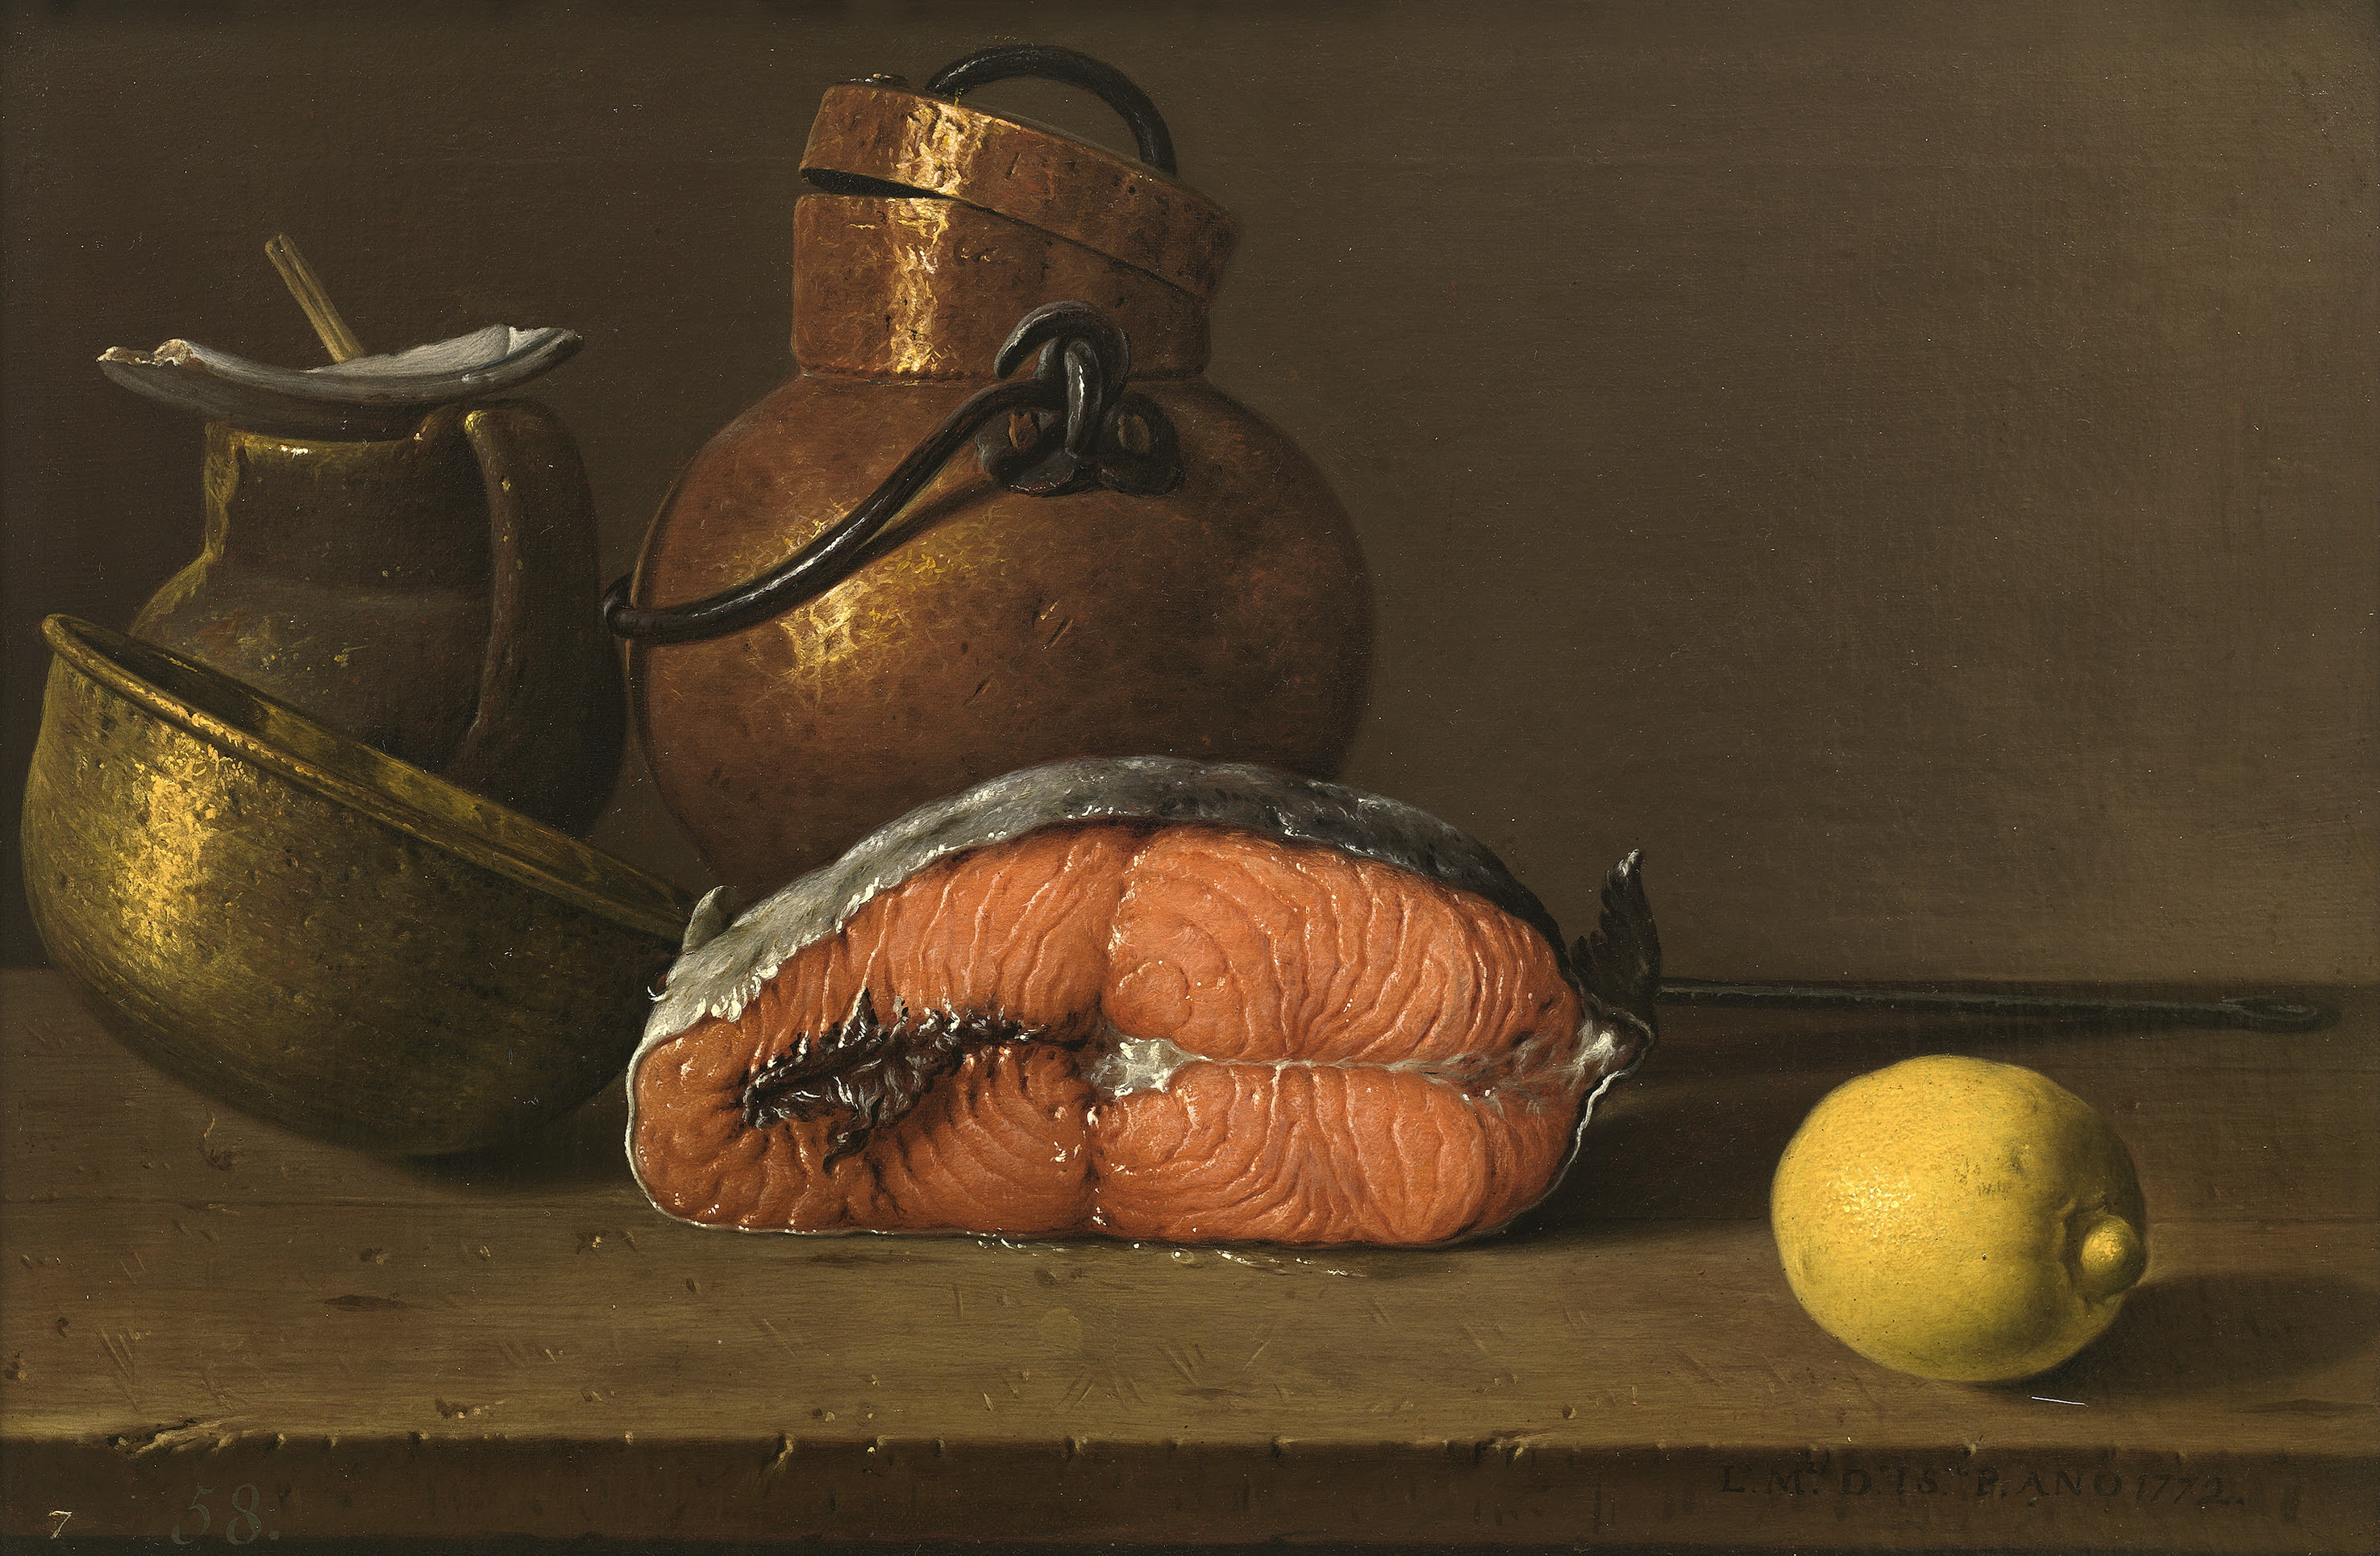 File:Luis Melendez, Still Life with Salmon,Lemon and three Vessels,1772 Museo del Prado Madrid.jpg